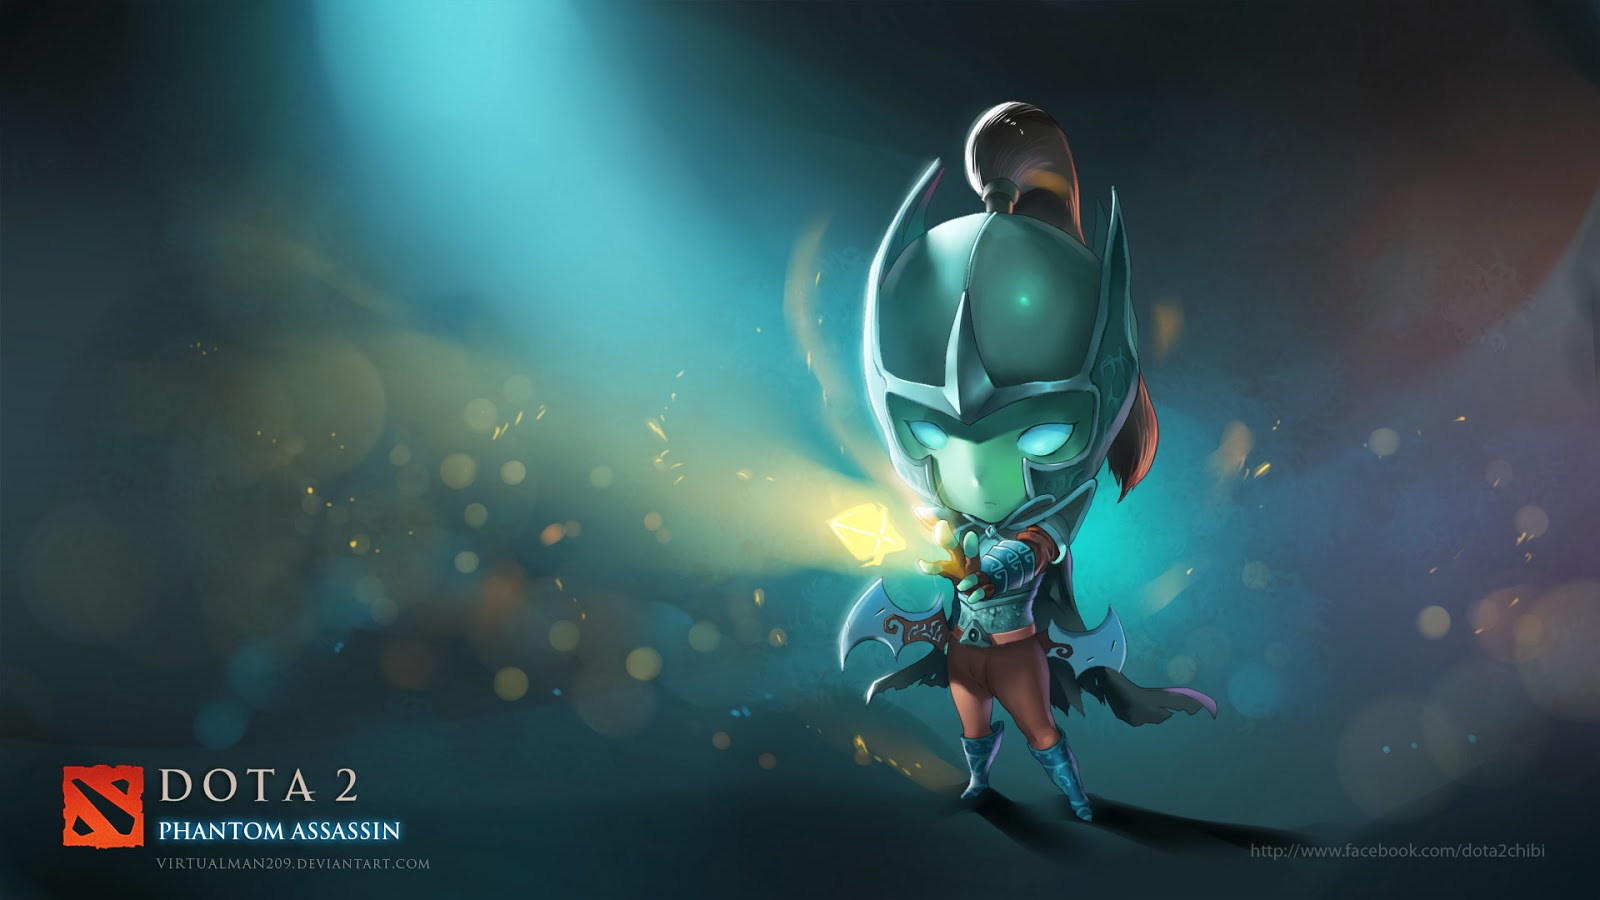 Mortred Dota 2 Phantom Assassin l2 Wallpaper HD